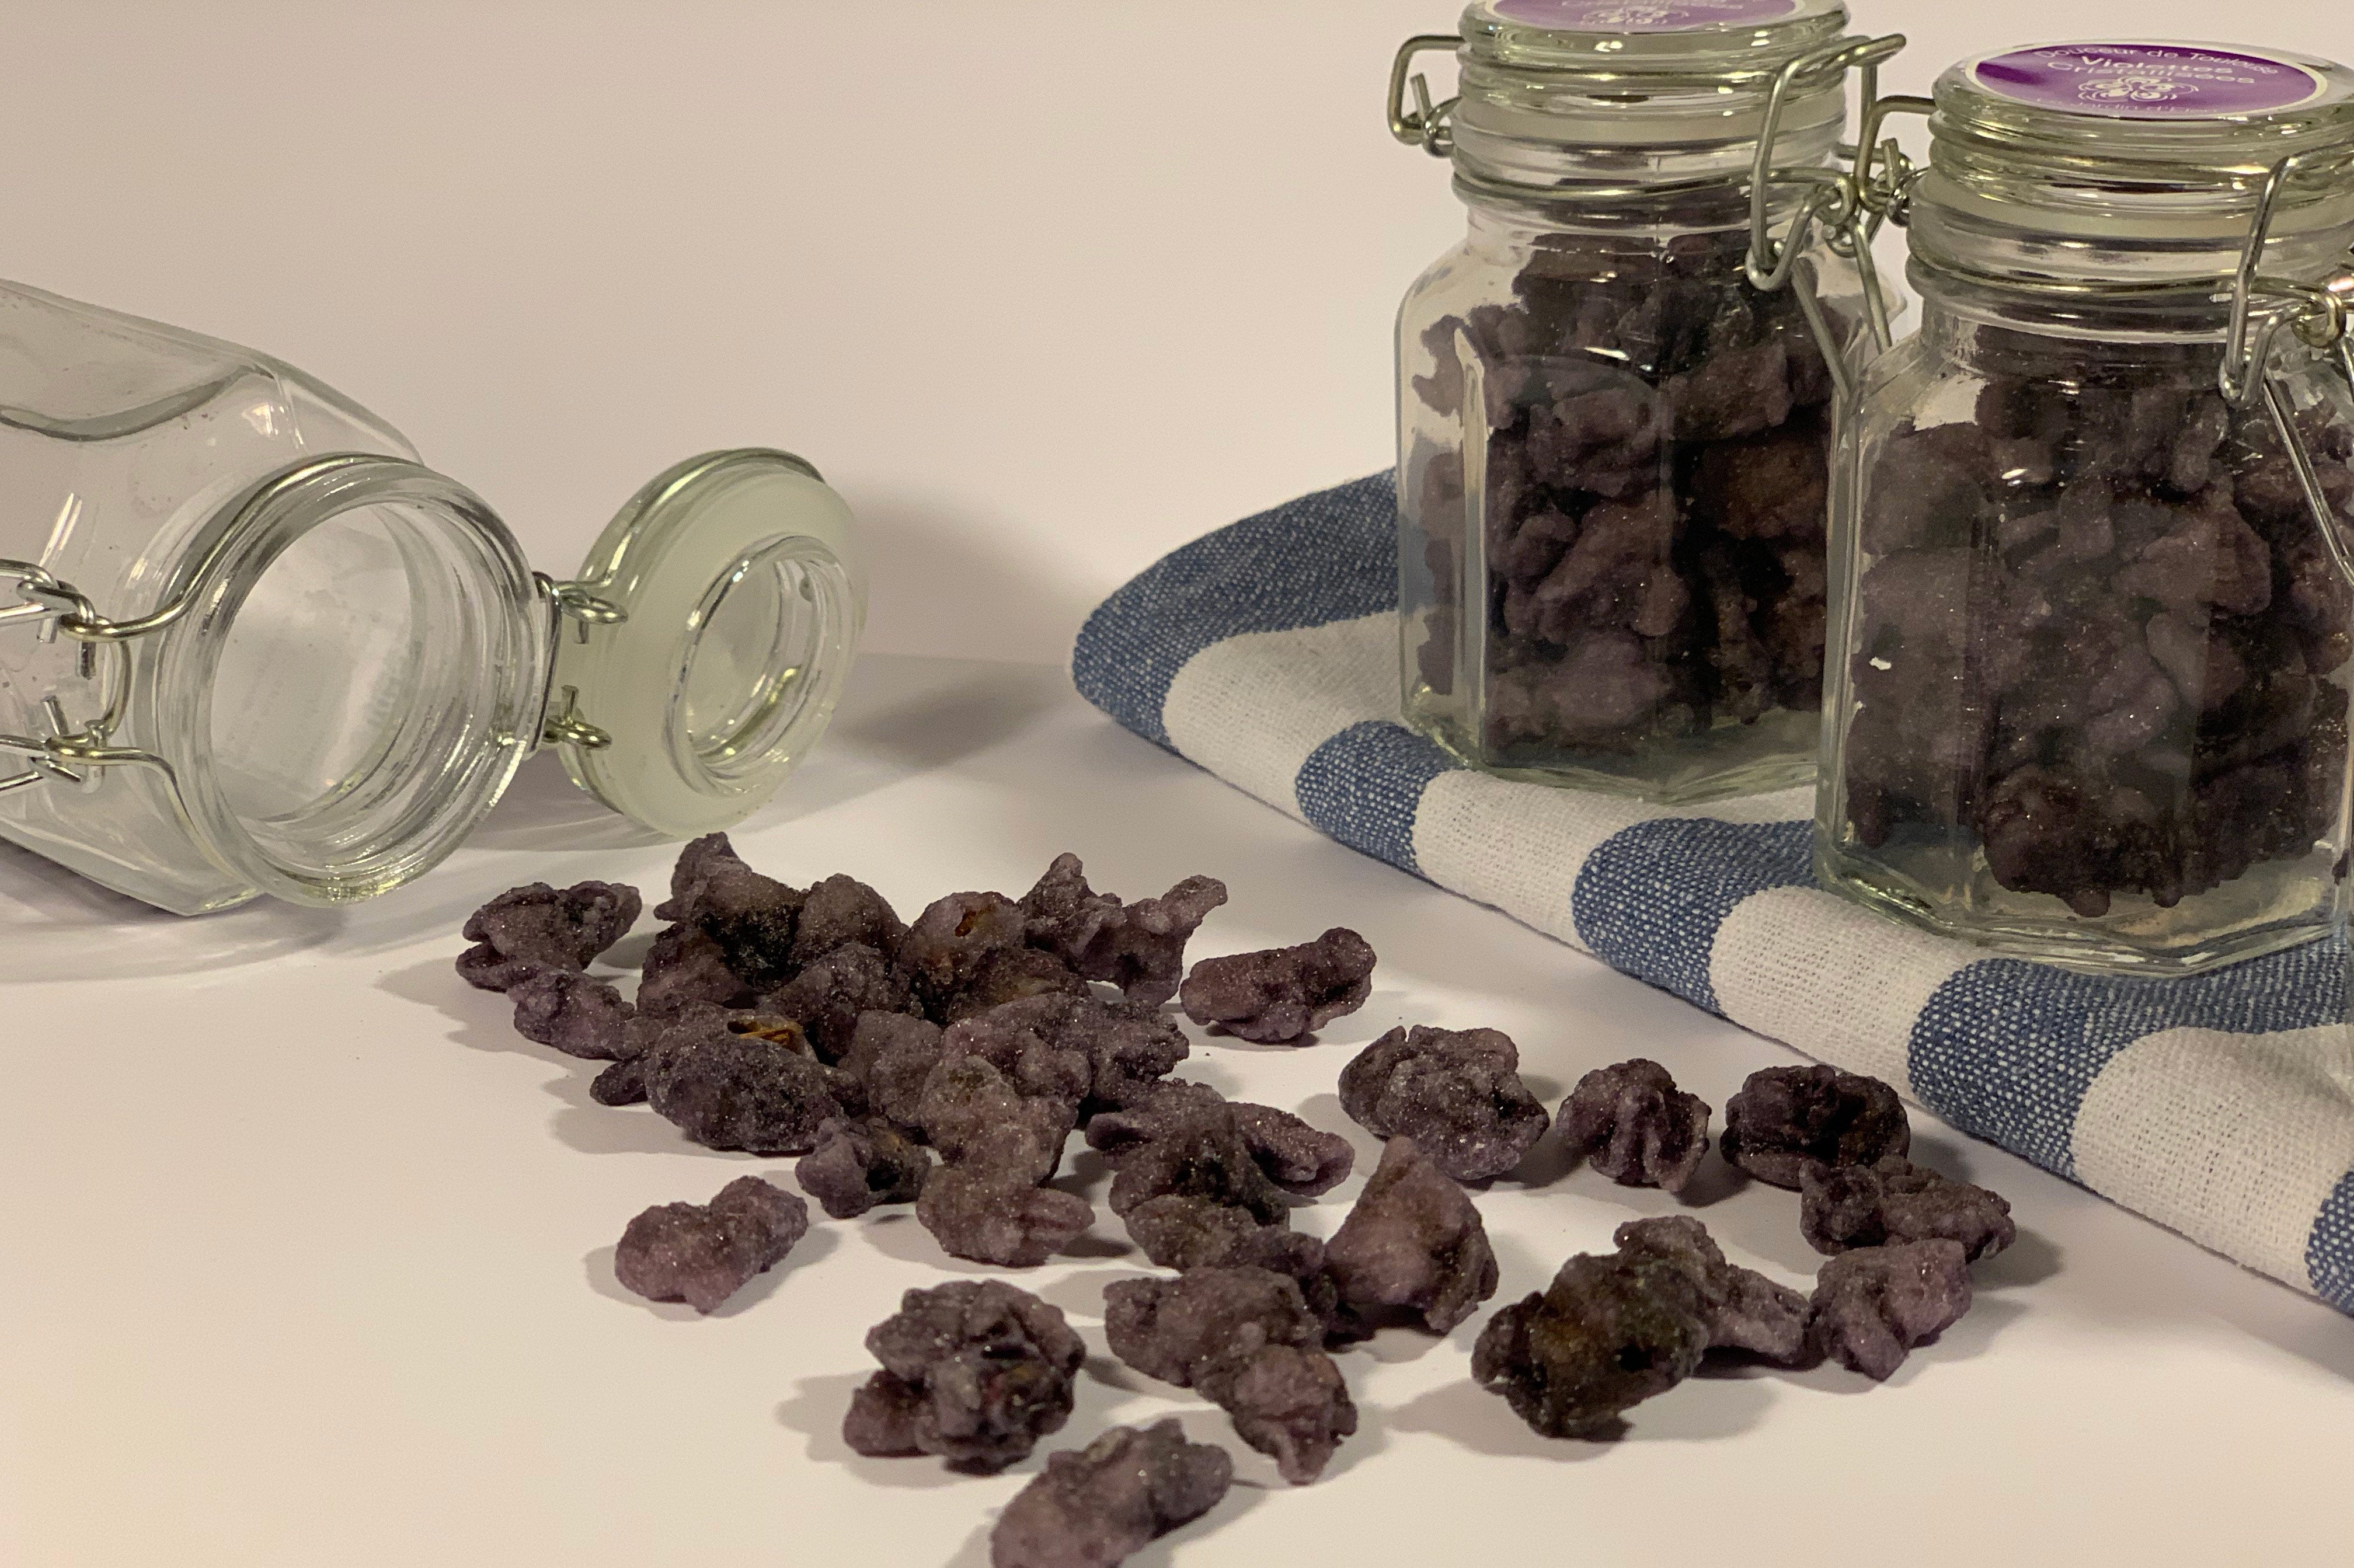 Violettes. Violet petals crystallised in sugar. They are sweets made in Toulouse, France.